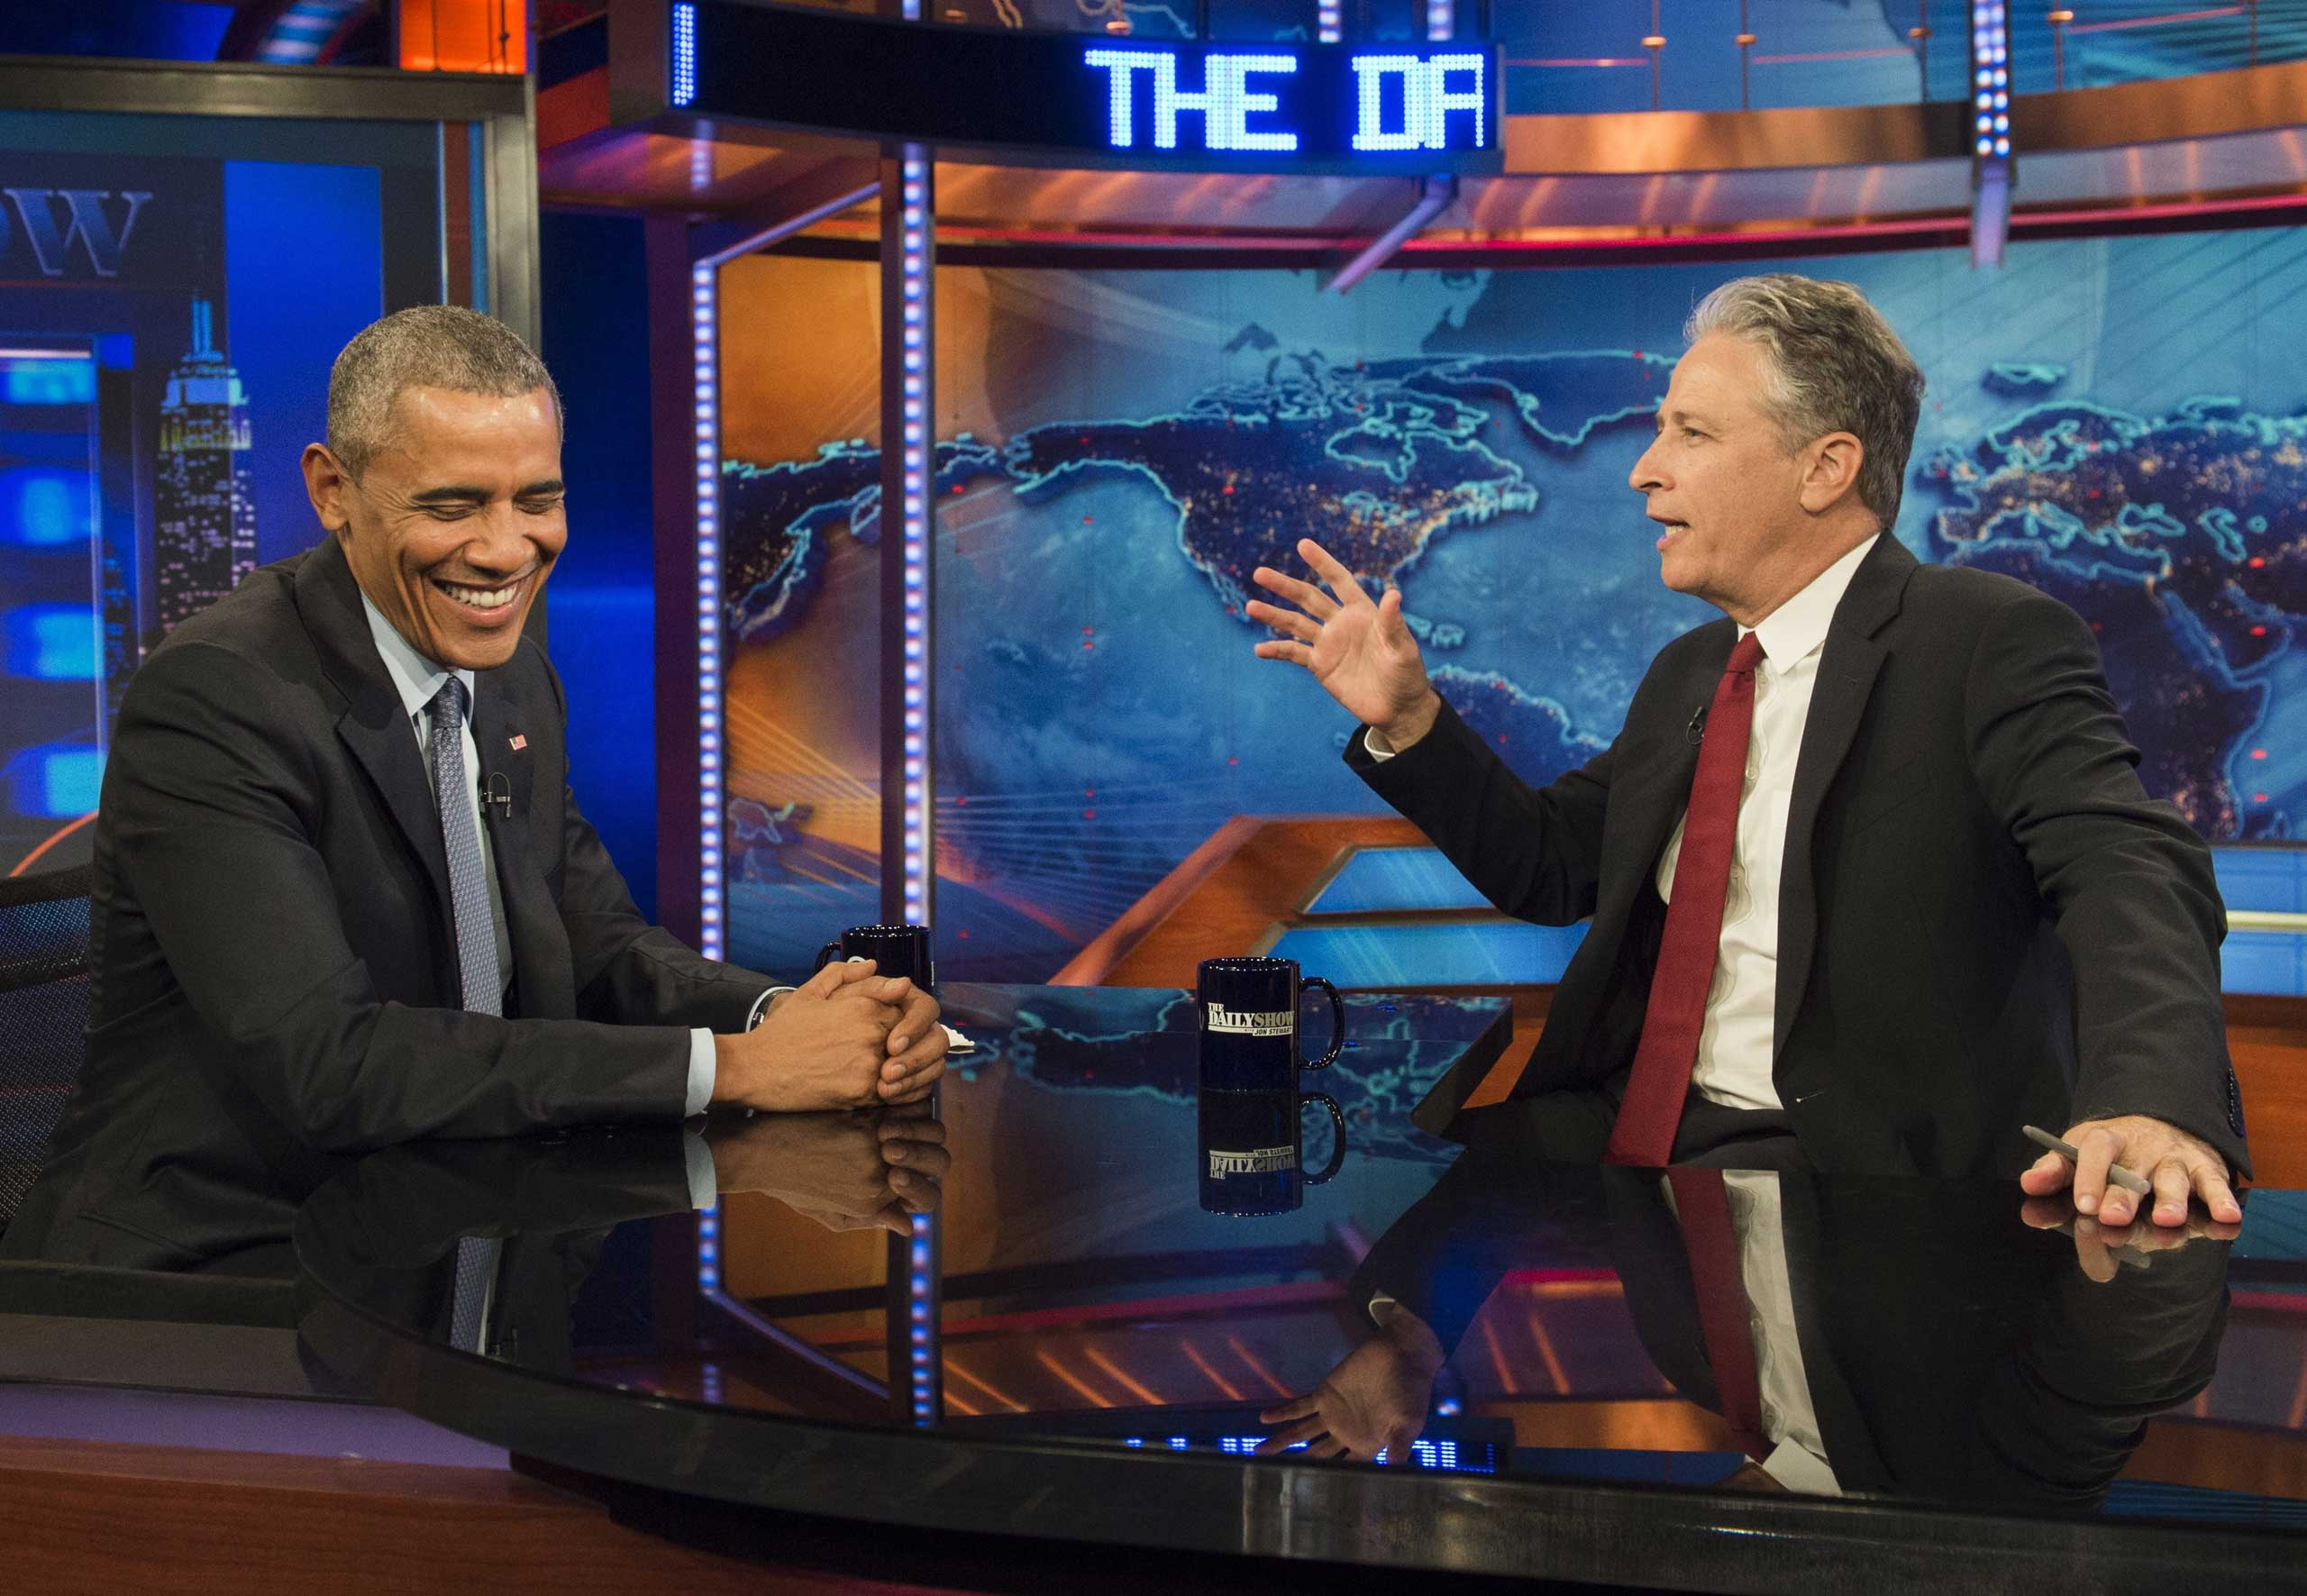 US President Barack Obama speaks with Jon Stewart, host of  The Daily Show with Jon Stewart,  during a taping of the show in New York, July 21, 2015.